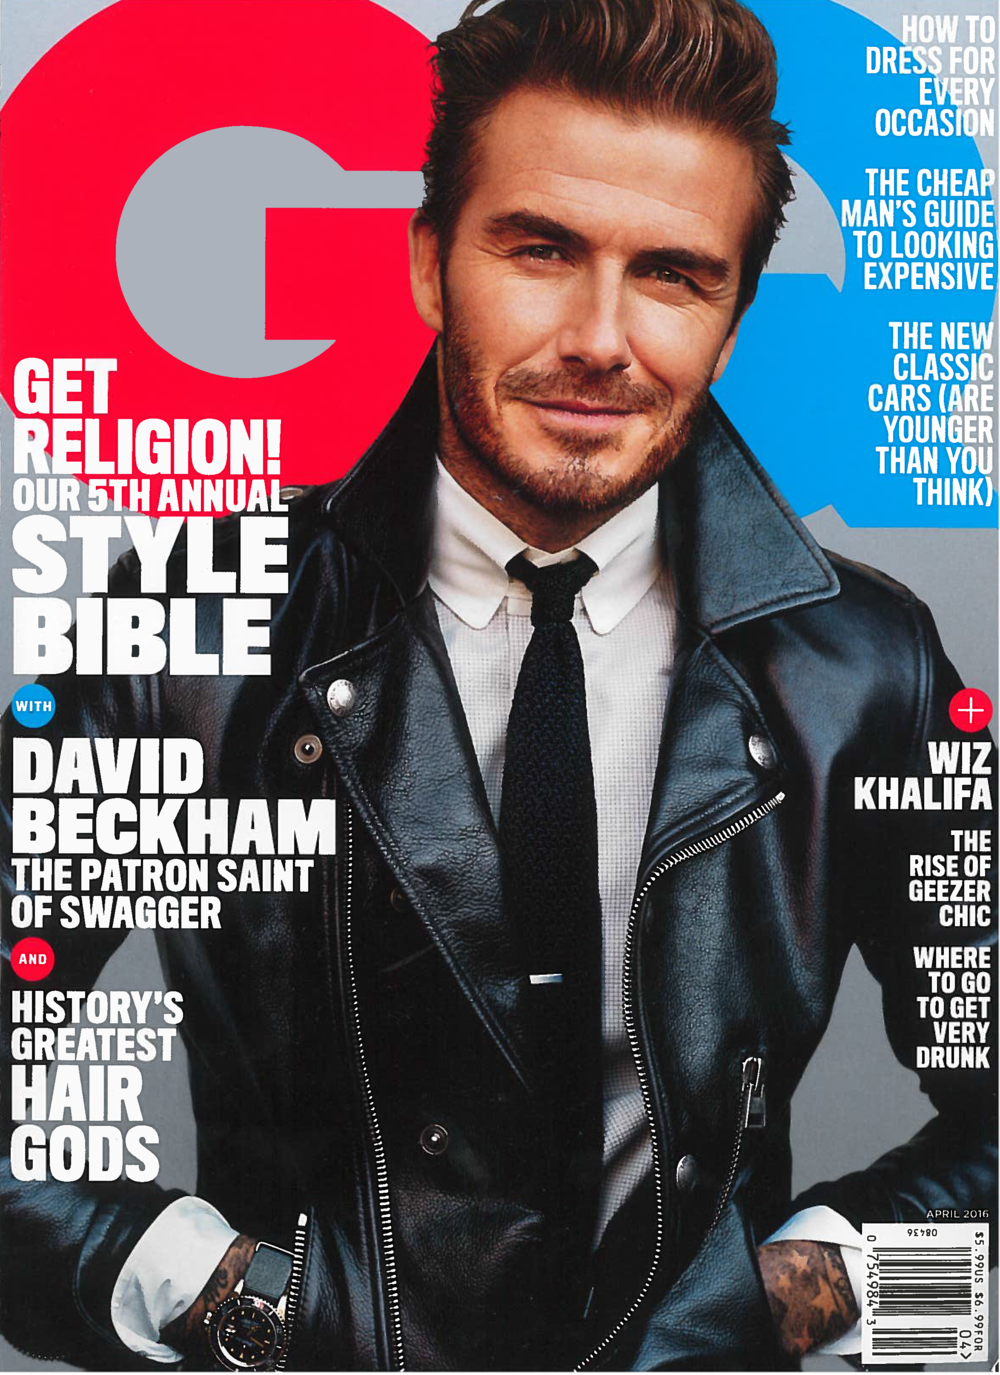 gq magazine - men's / fashion